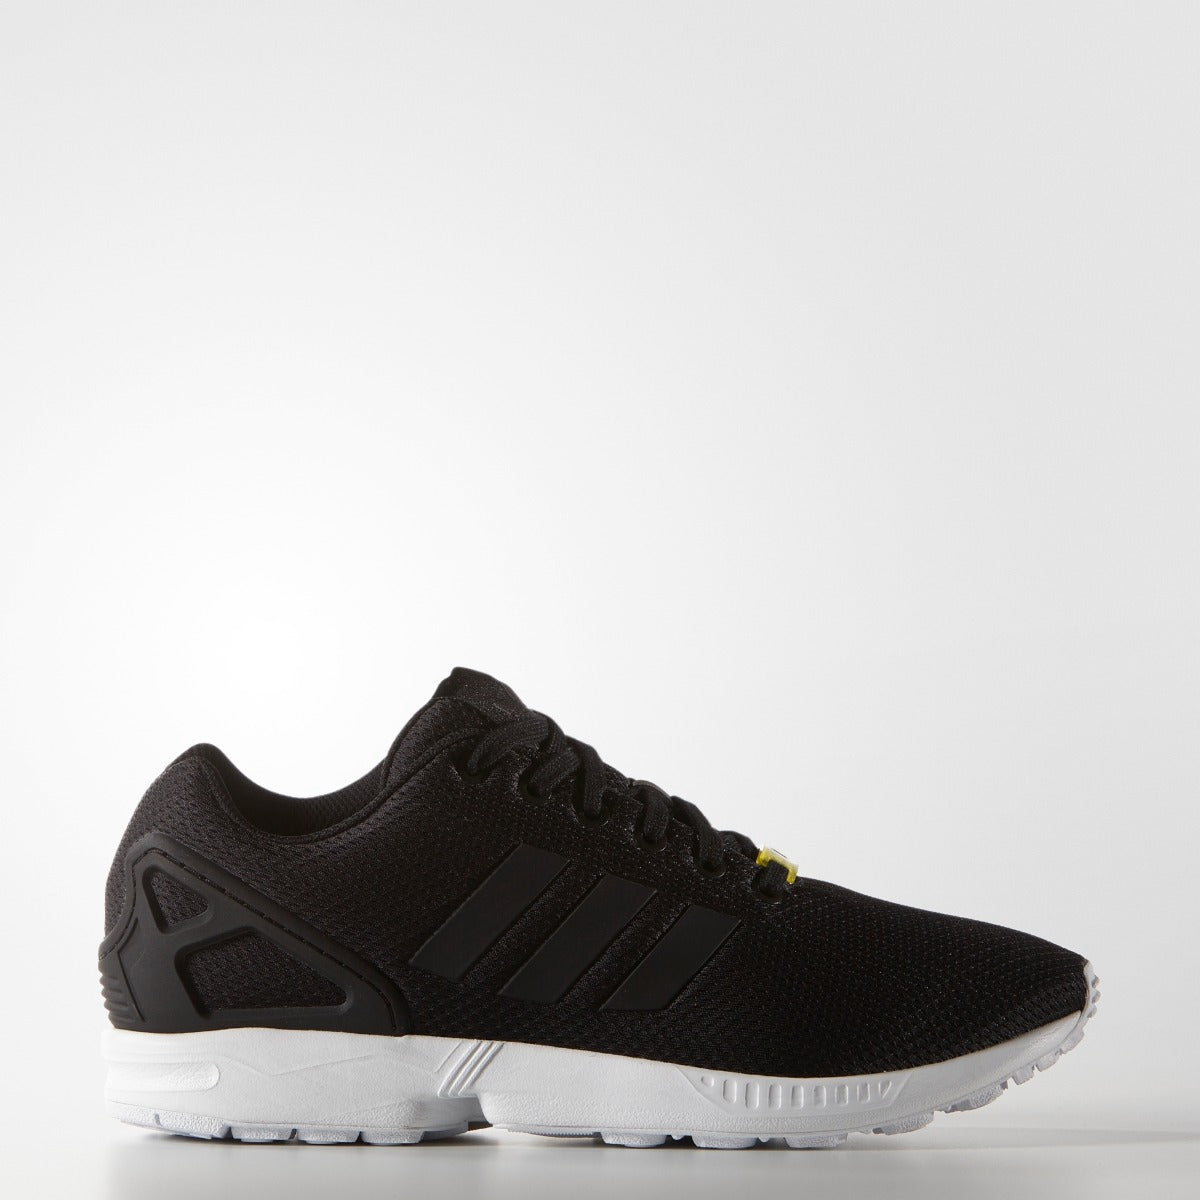 separation shoes bd5eb ef910 Men s adidas Originals ZX Flux Shoes Core Black White